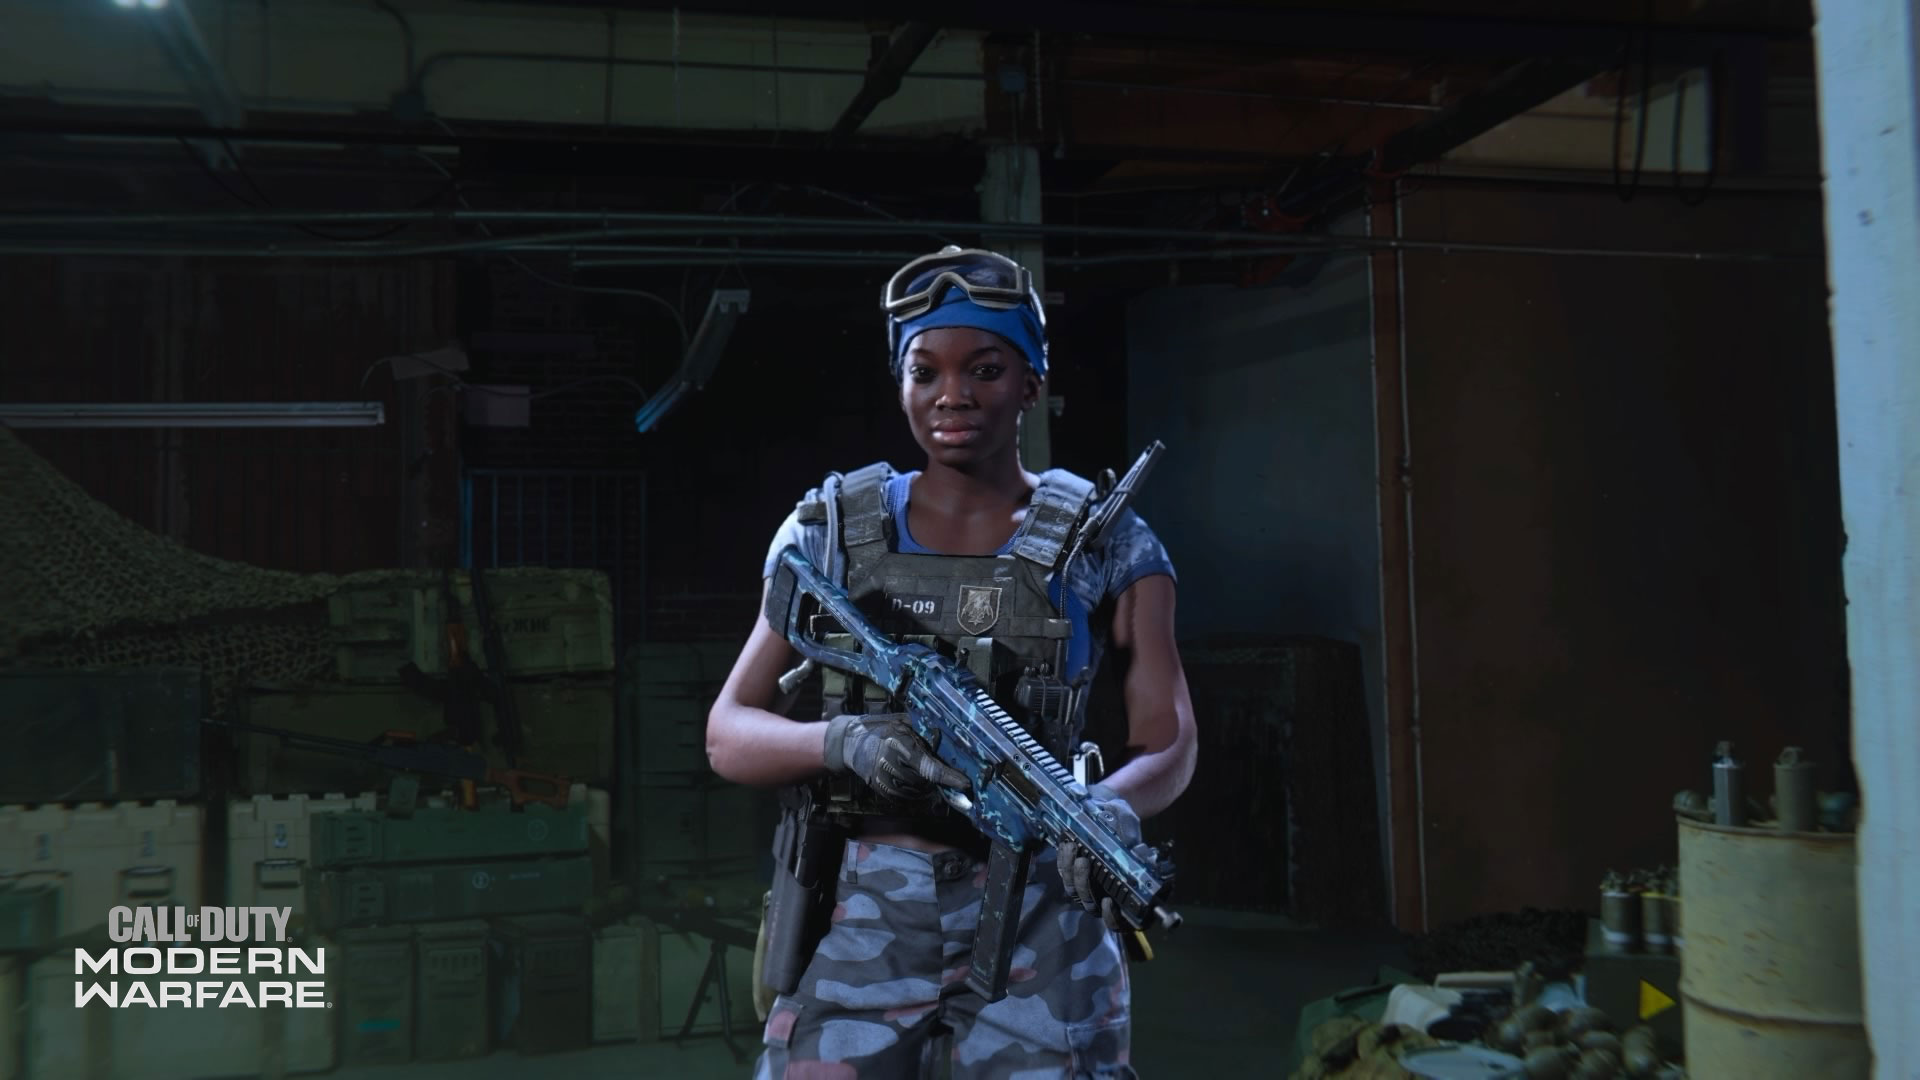 The Rank Up Report #16: Platinum SMGs, Operator Missions, and Loadout Updates - Image 4